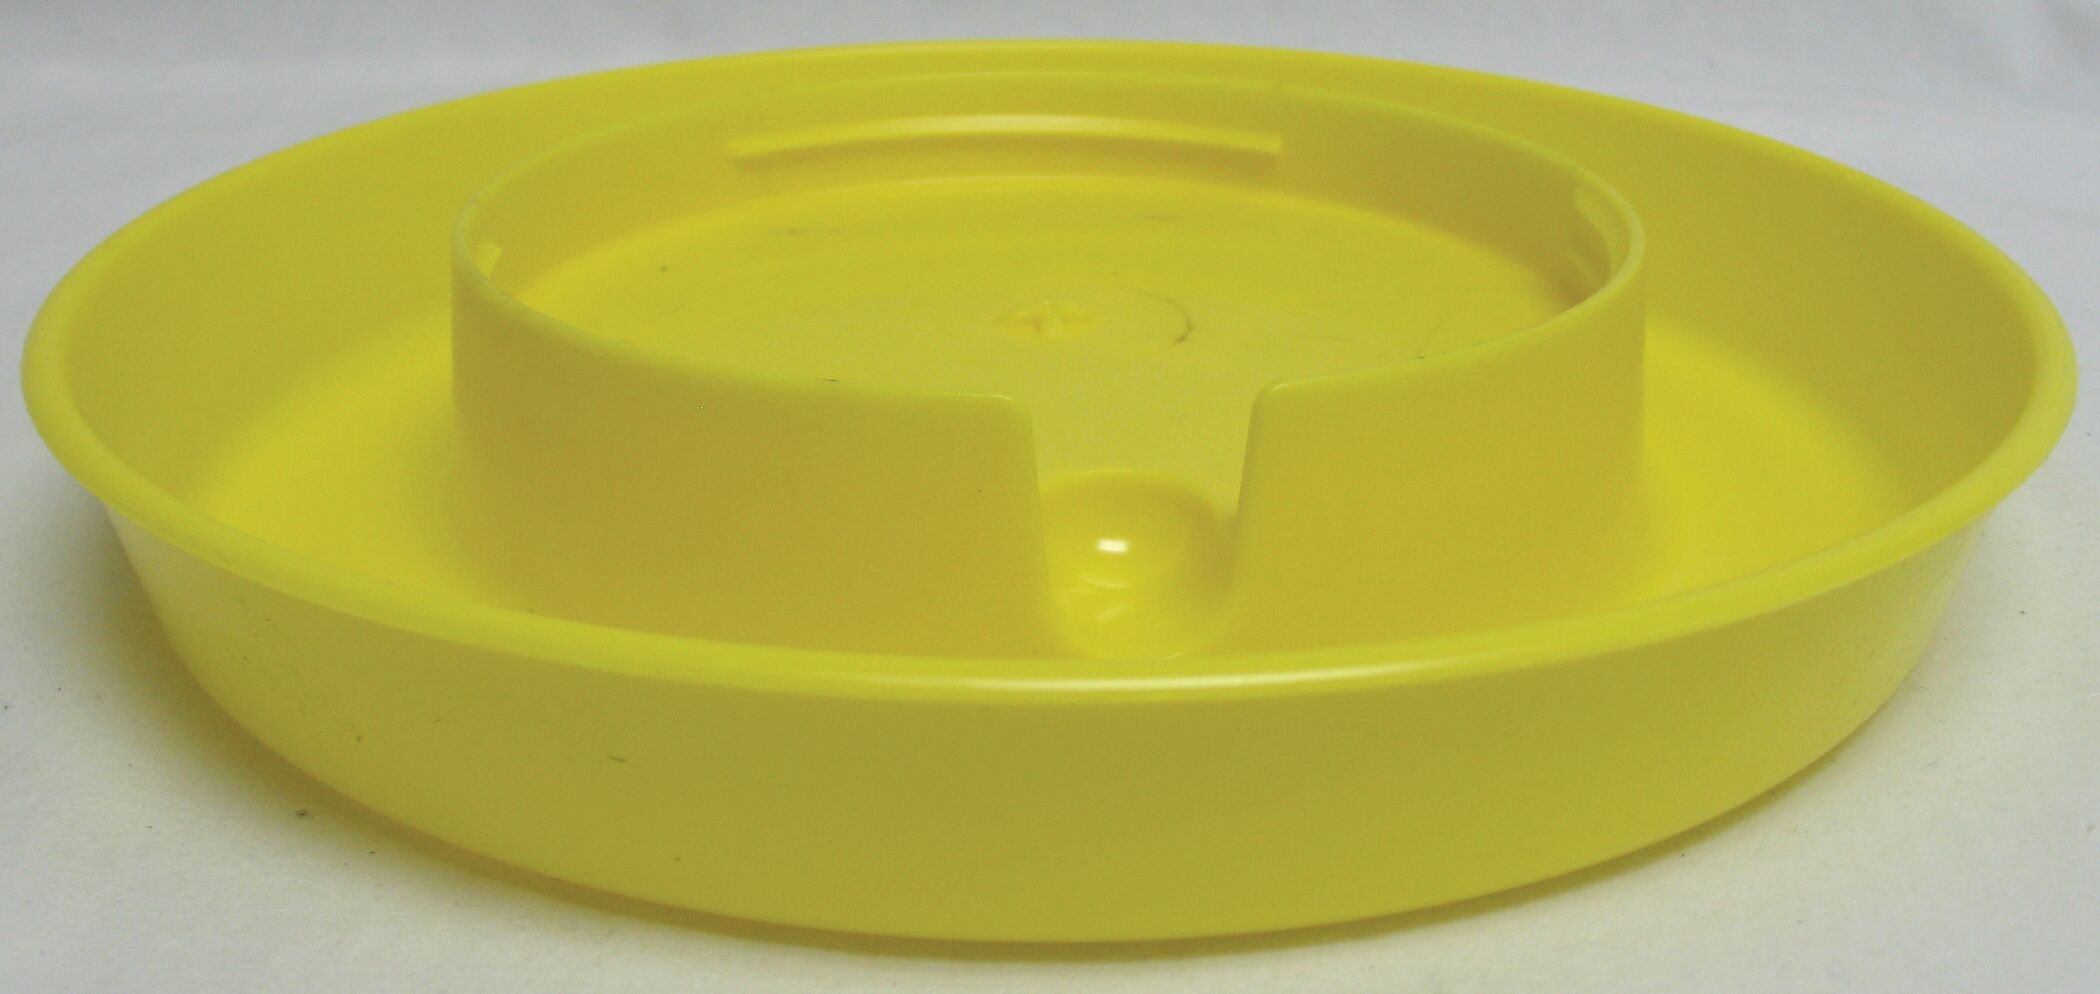 Dish for Bird Feeder Color: Yellow